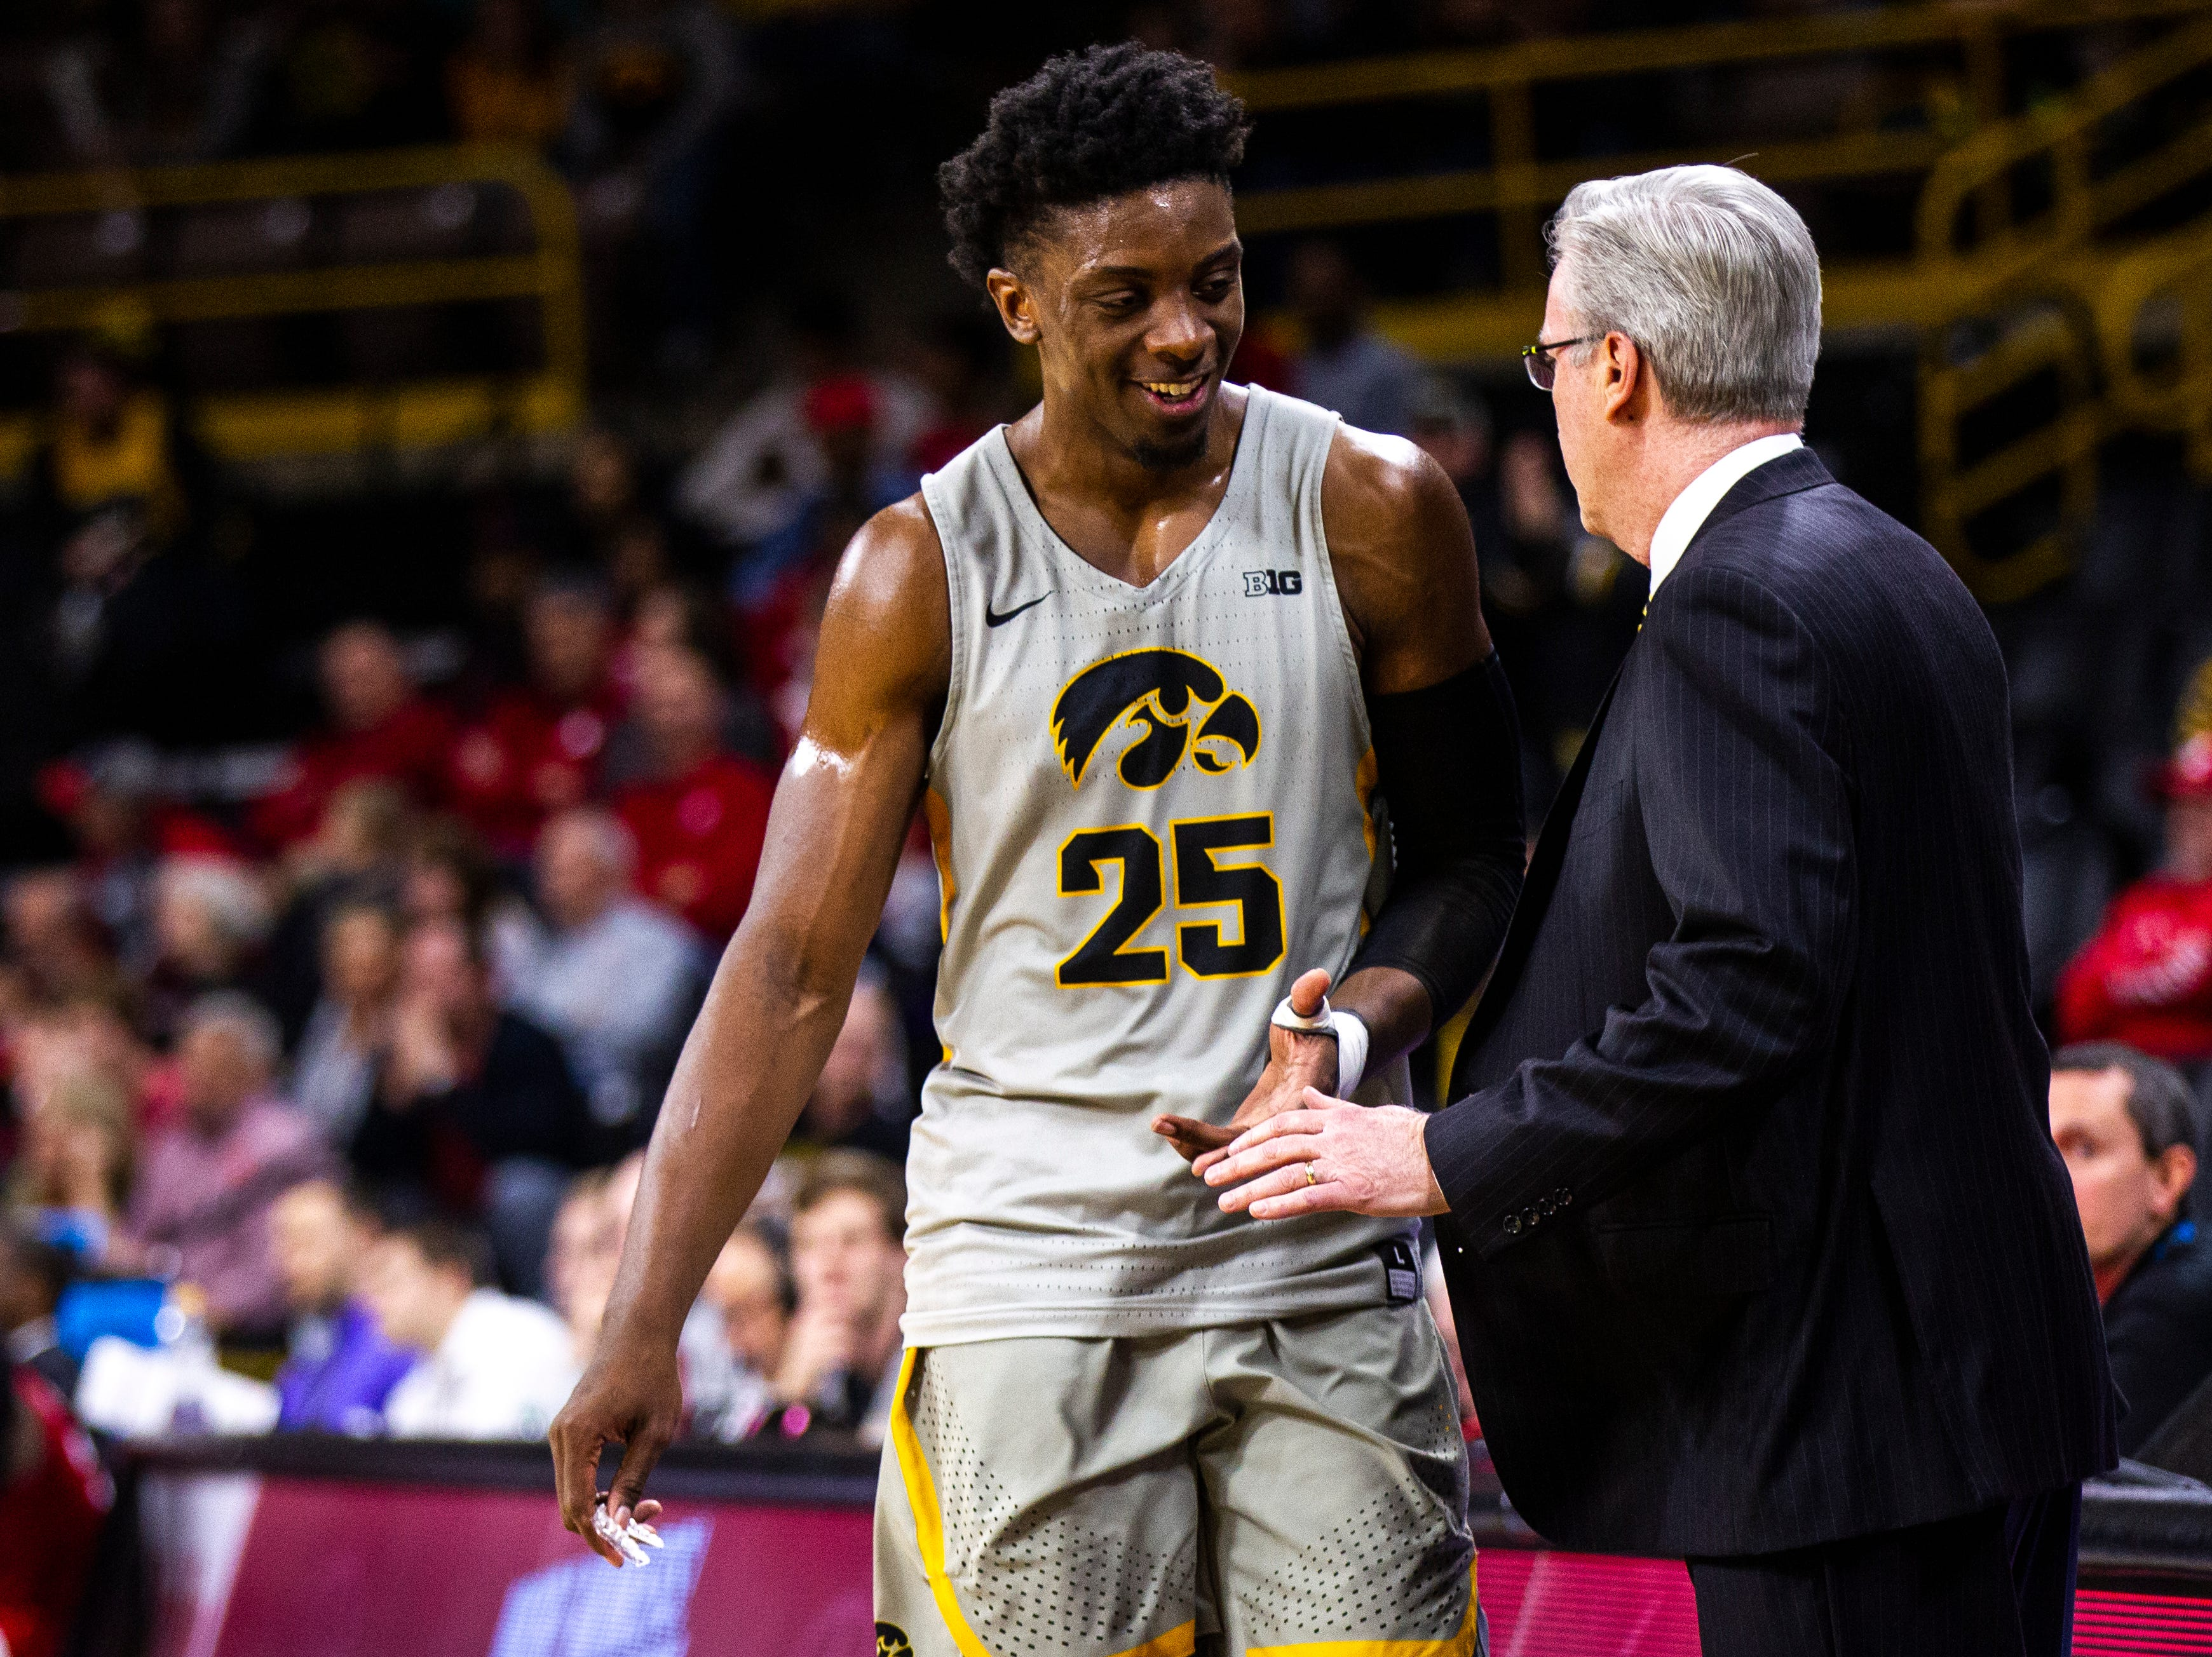 Iowa forward Tyler Cook (25) smiles while he talks with Iowa men's basketball head coach Fran McCaffery as he heads to the bench during a NCAA Big Ten Conference men's basketball game on Sunday, Jan. 6, 2019, at the Carver-Hawkeye Arena in Iowa City, Iowa.